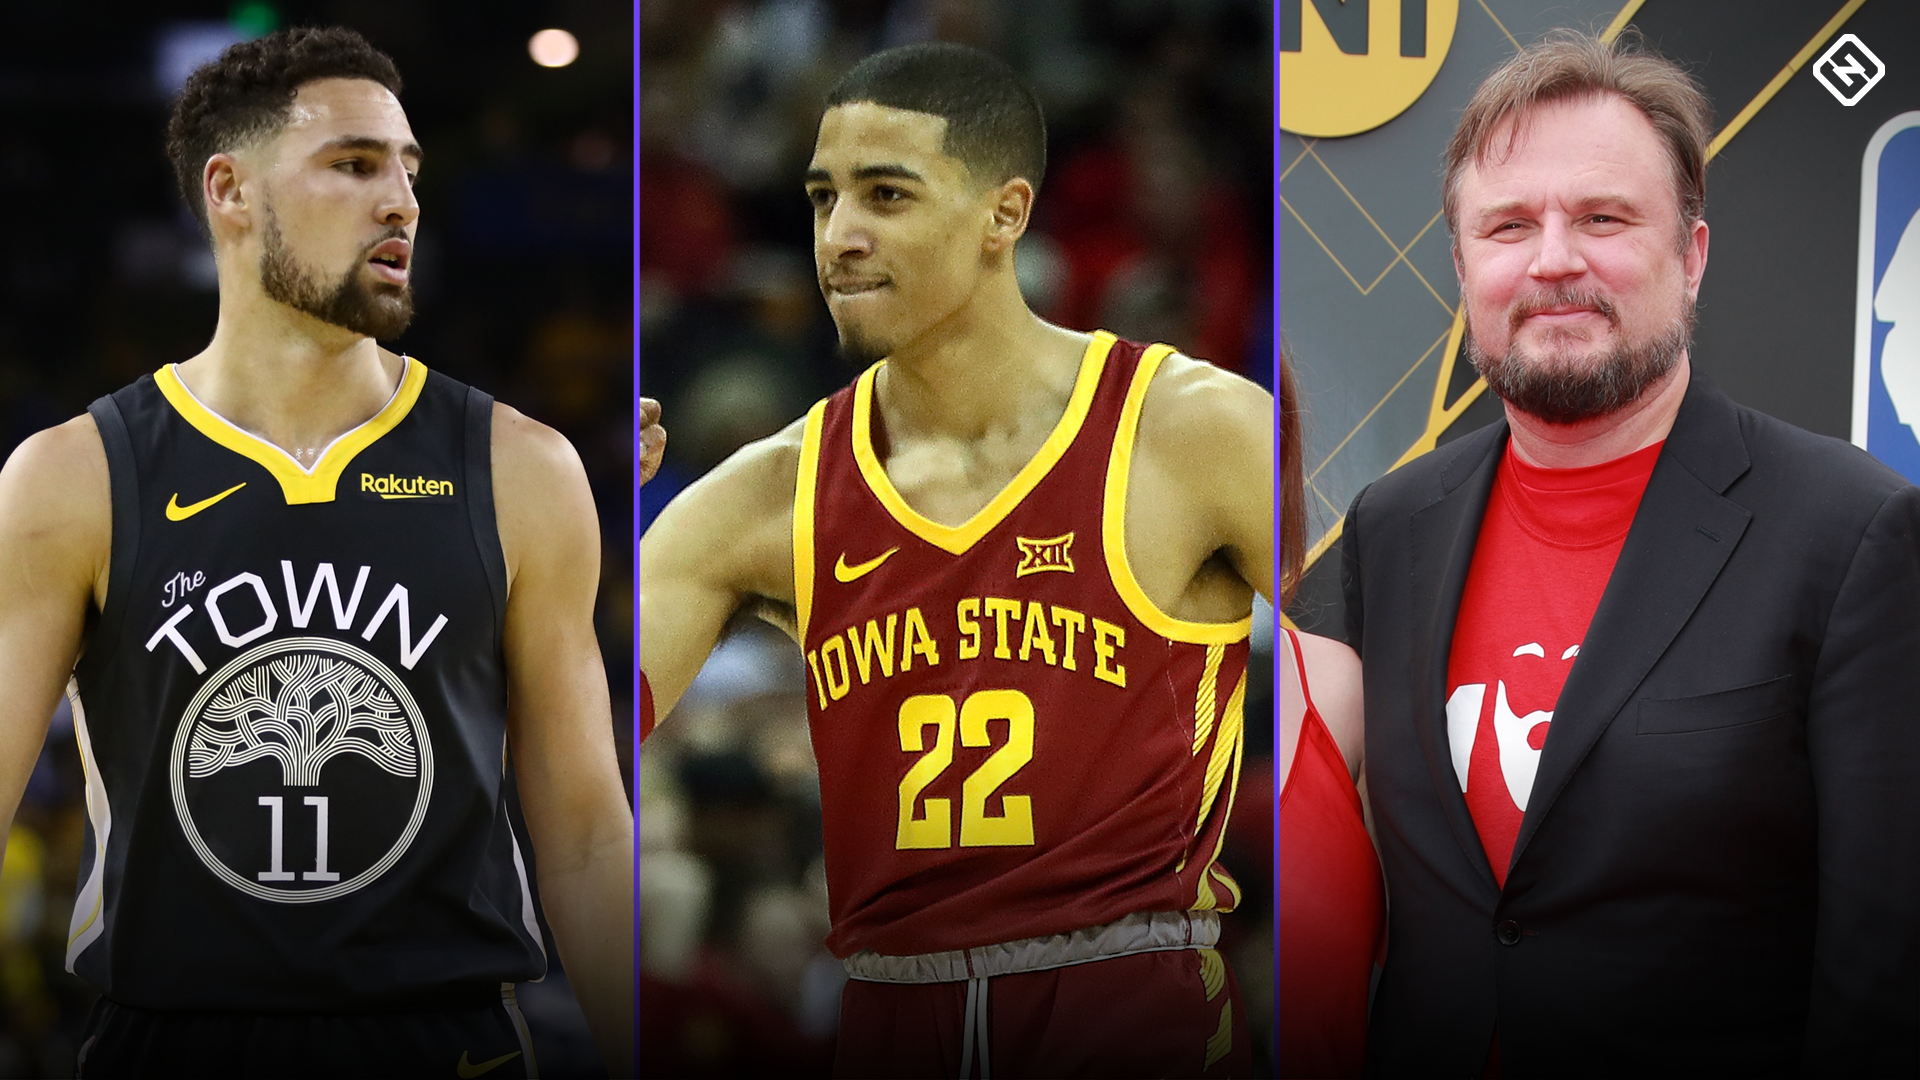 NBA Draft 2020 winners losers: Daryl Morey reconstructs 76ers; Klay Thompson's injury overshadows Warriors' picks